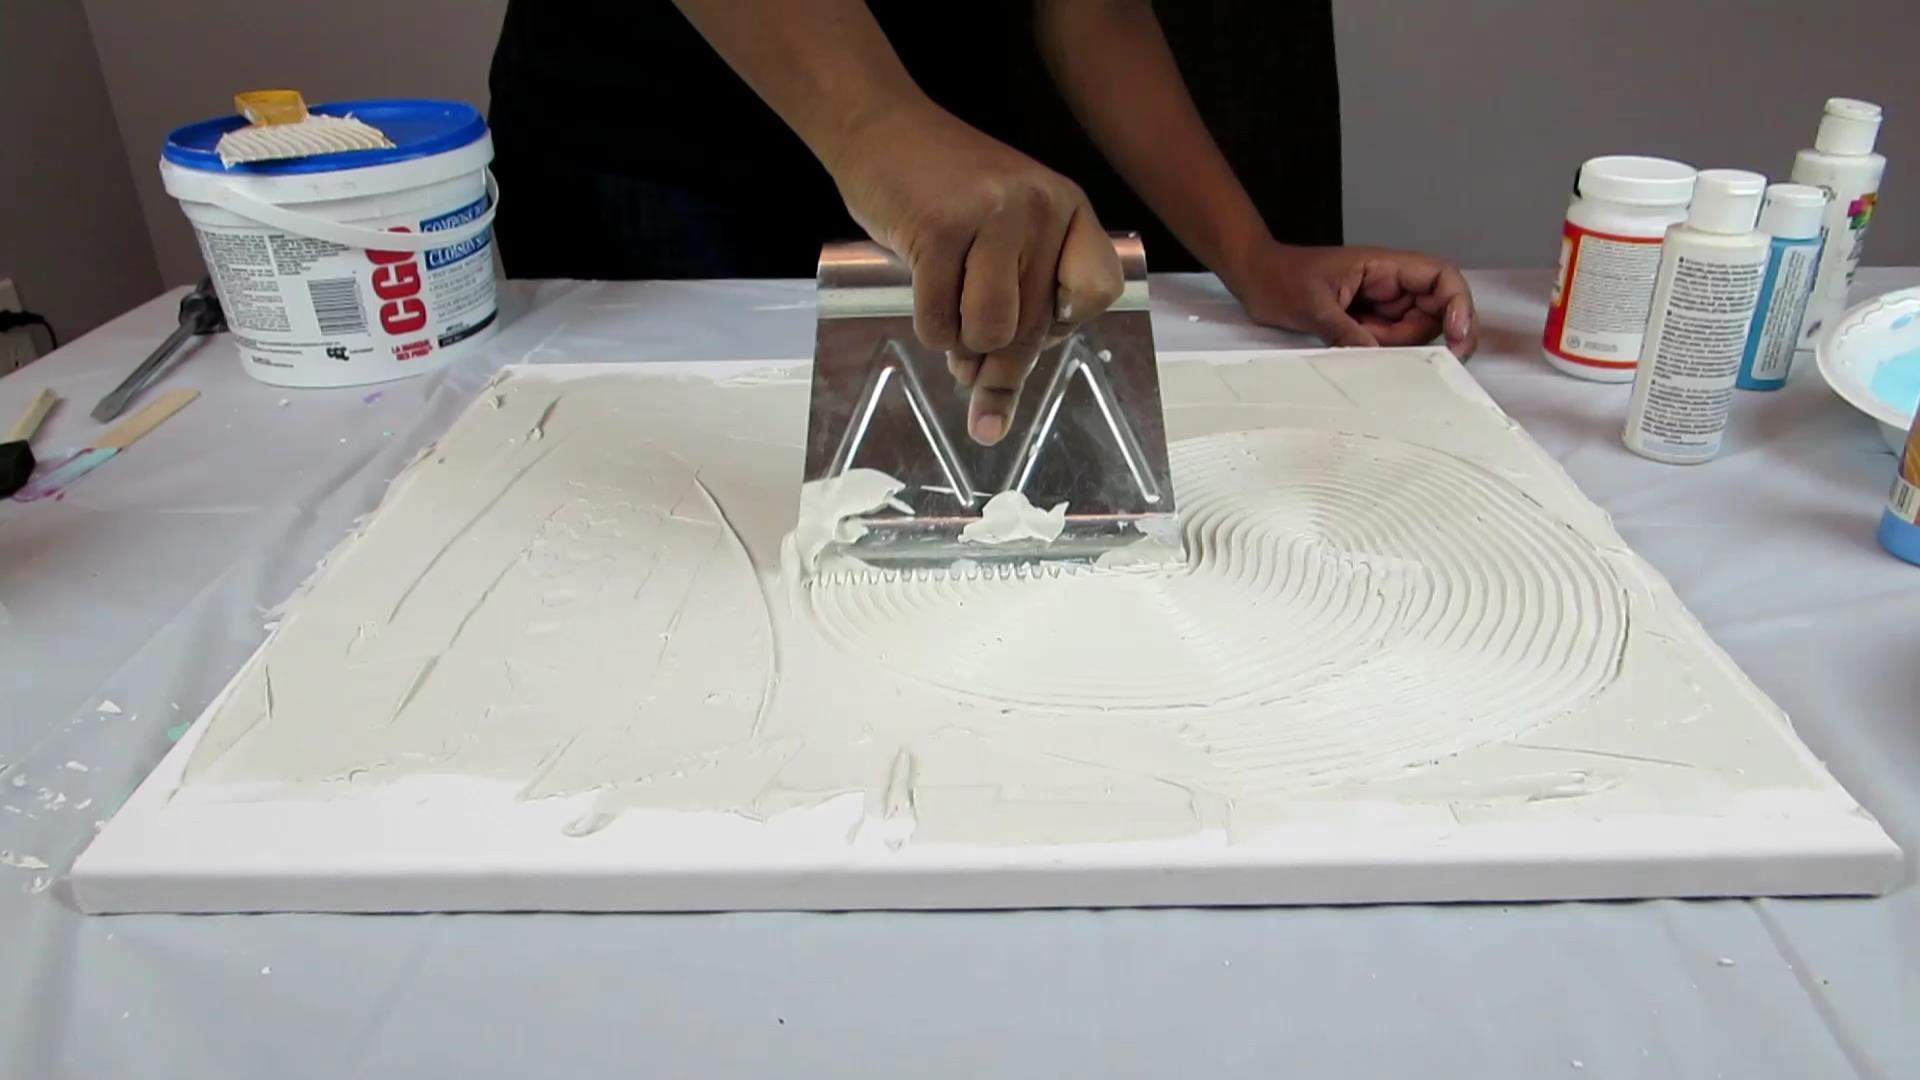 DIY Wall Decor With Drywall Compound   Use Adhesive Spreader To Make Swirls